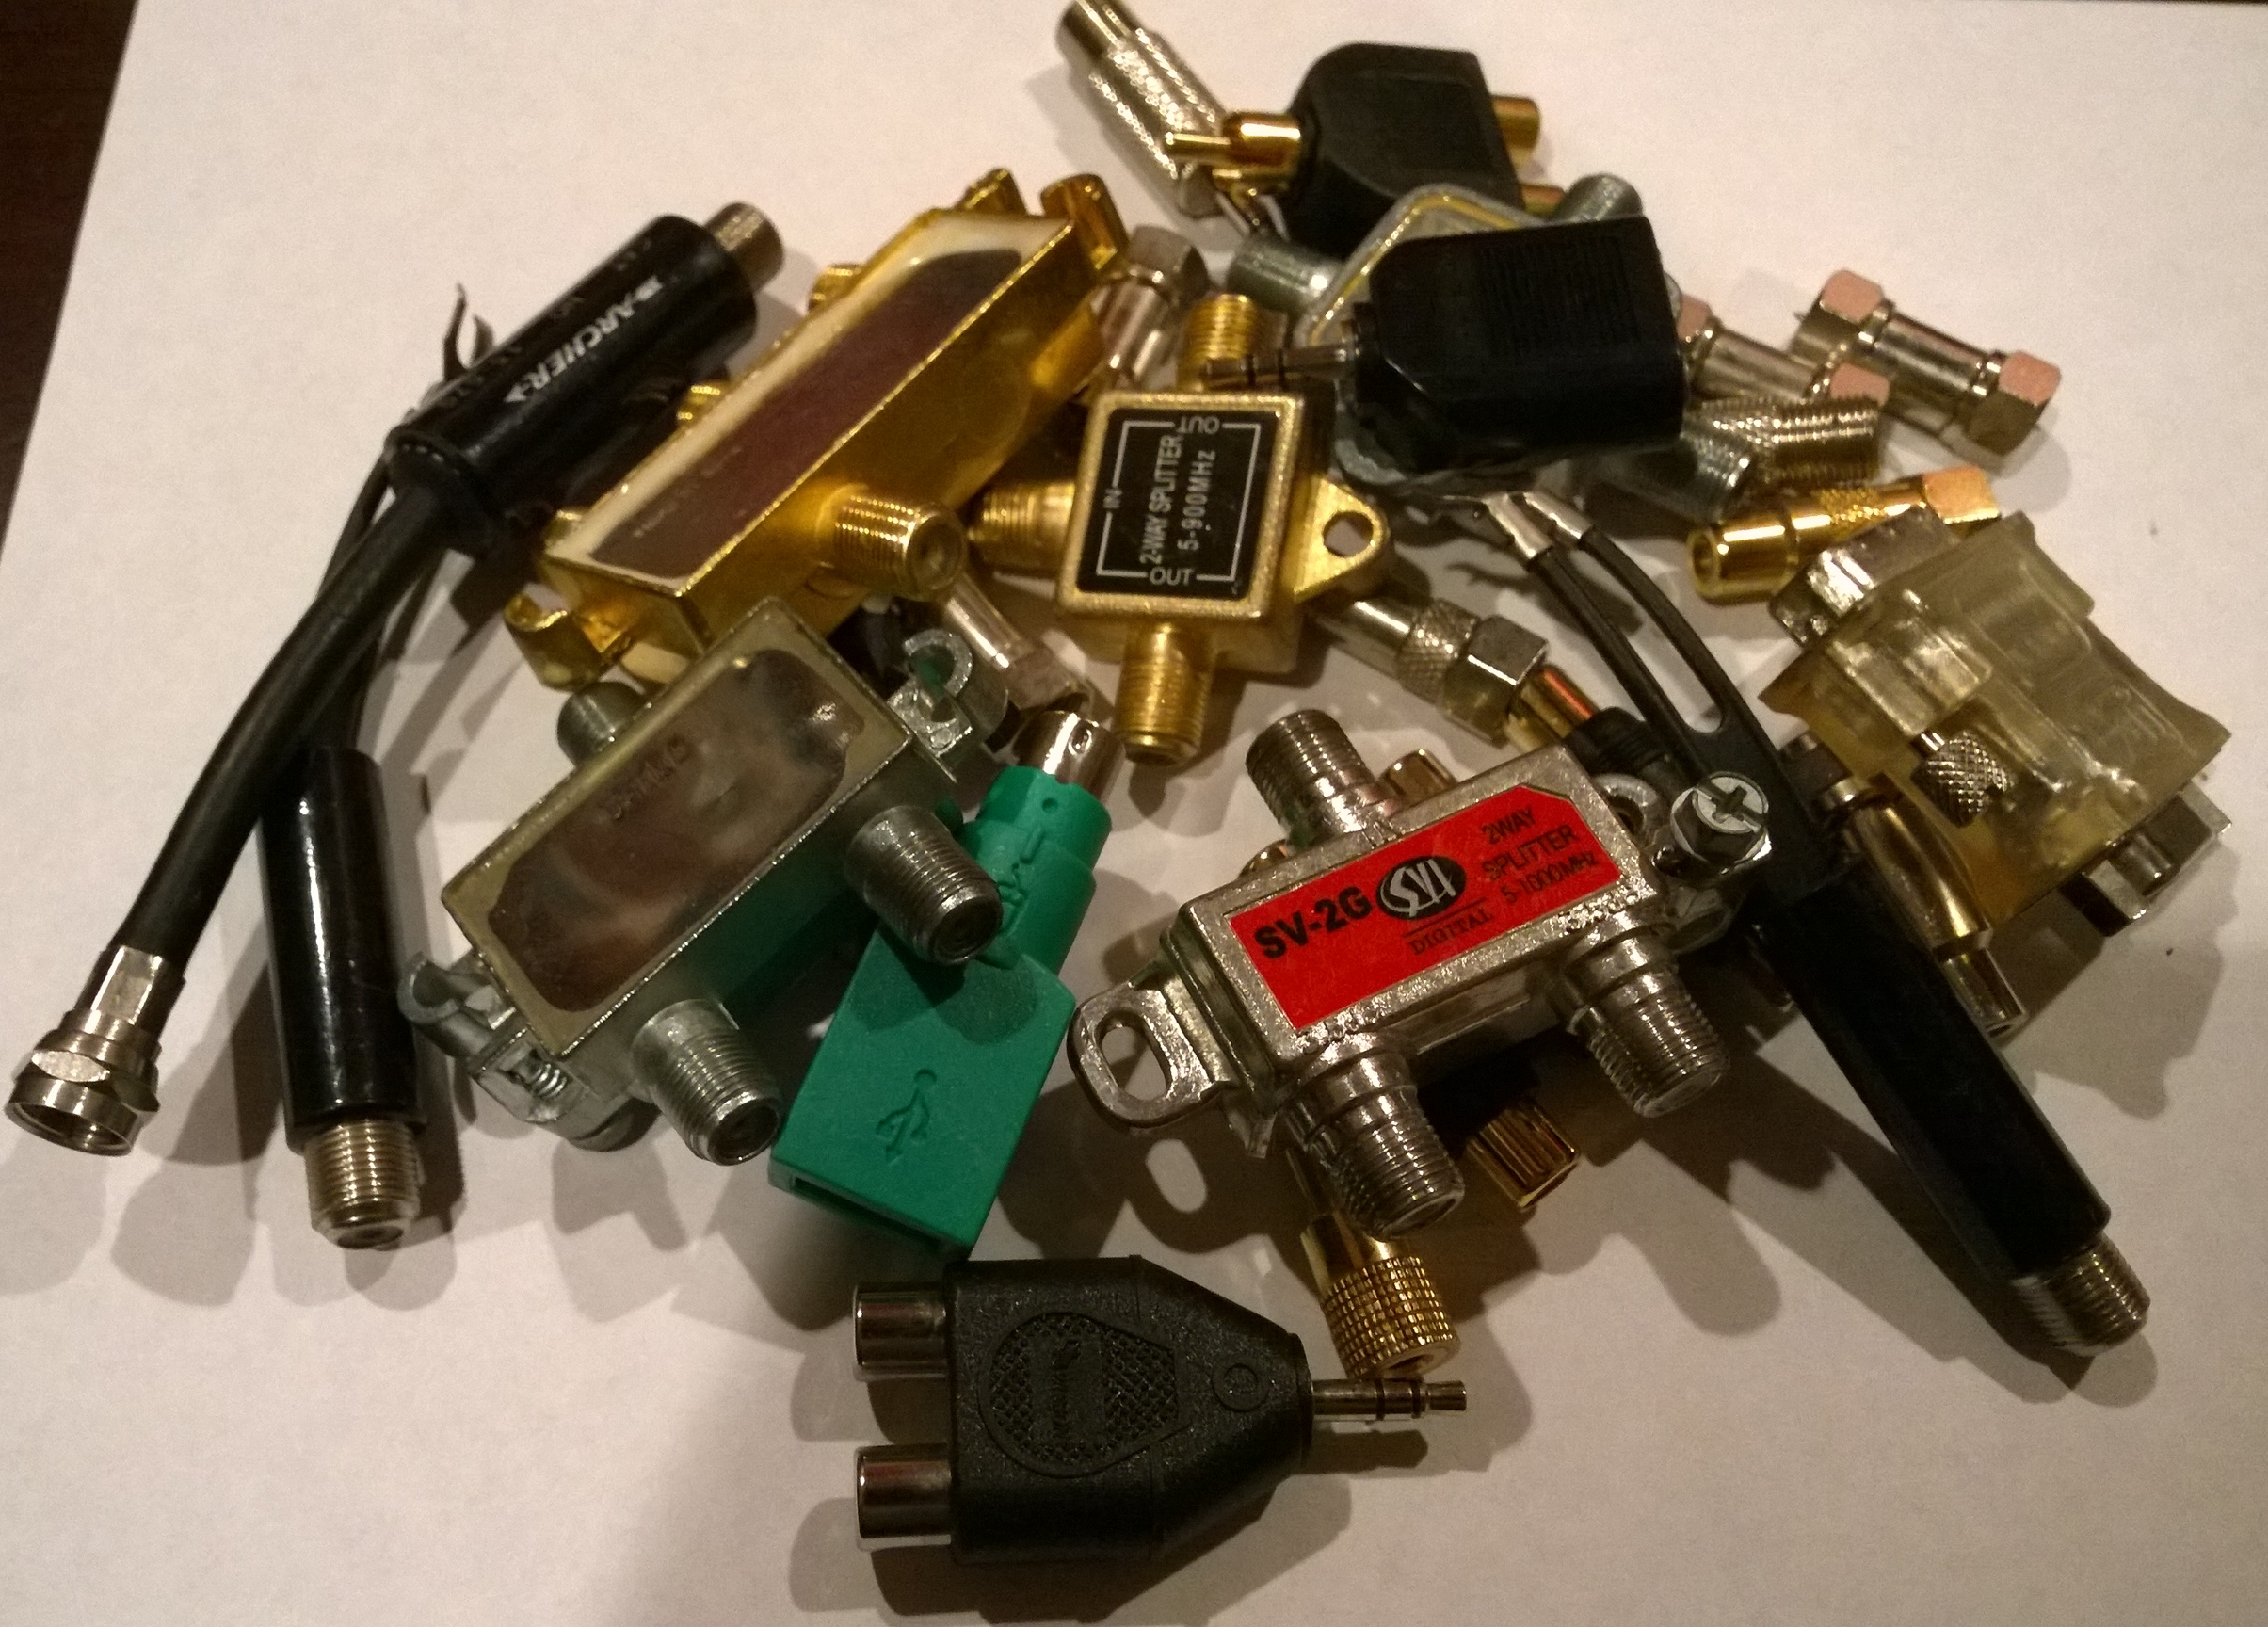 Adapters from Radio Shack